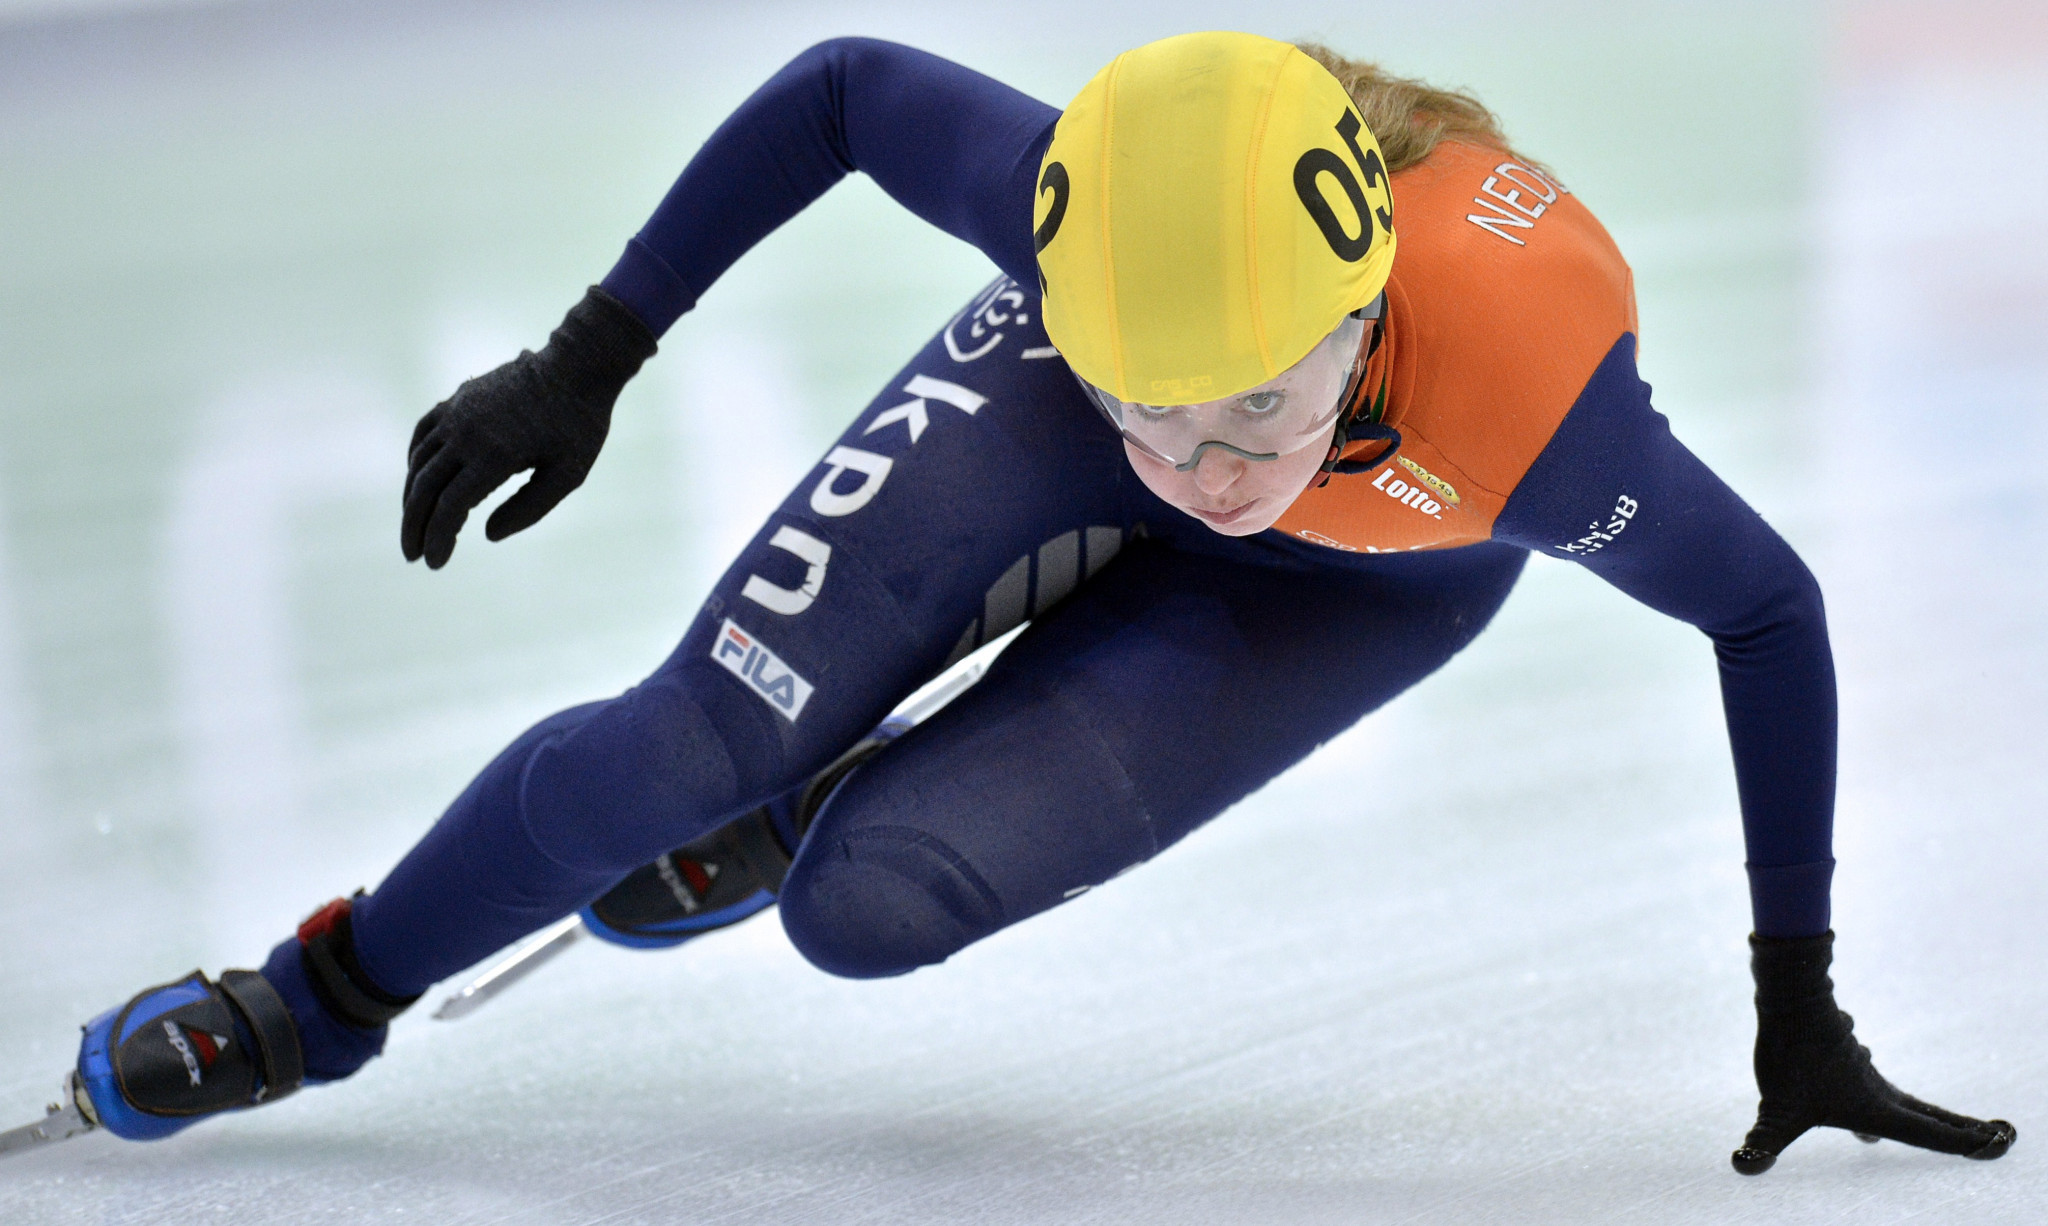 Lara van Ruijven is a world champion and Olympic medallist ©Getty Images